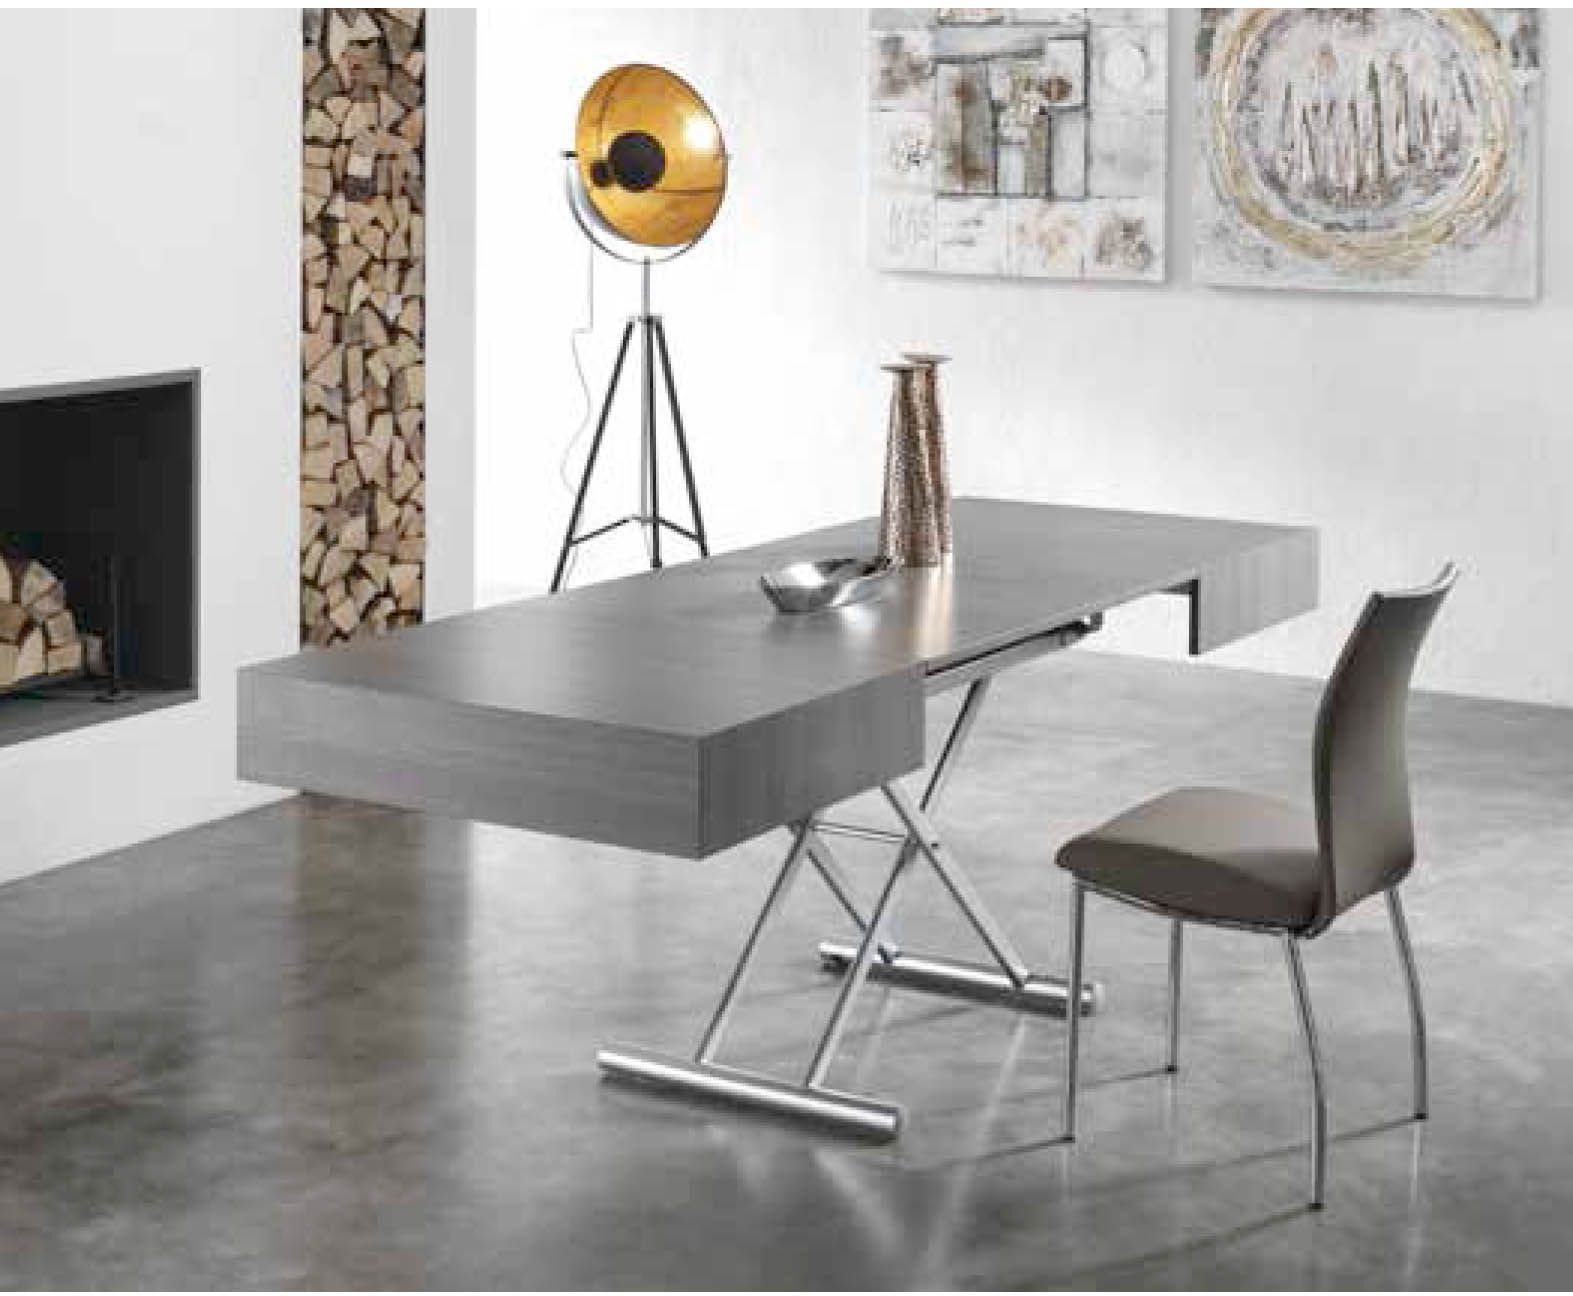 Italian dining extendible coffee and dining table Pro available